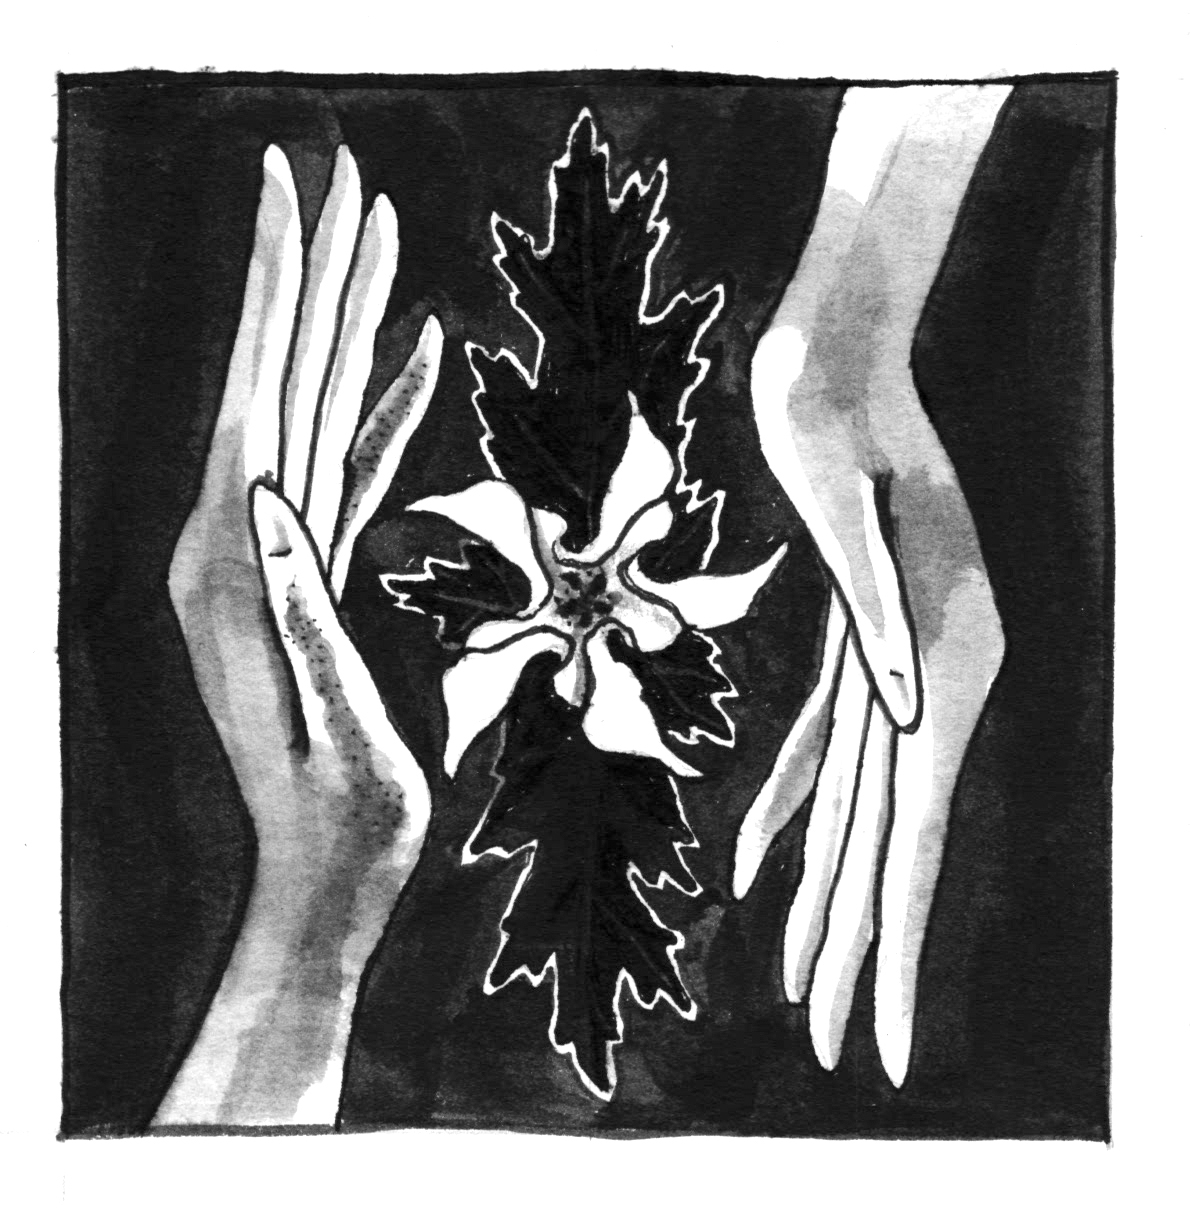 A grayscale illustration of two hands opposite another with a flower in between them. The hand on the left is facing up and the hand on the right is facing down. The flower in the middle is white and the leaves around it are dark. The background is dark gray. Illustration by Artemesia Trapeze.